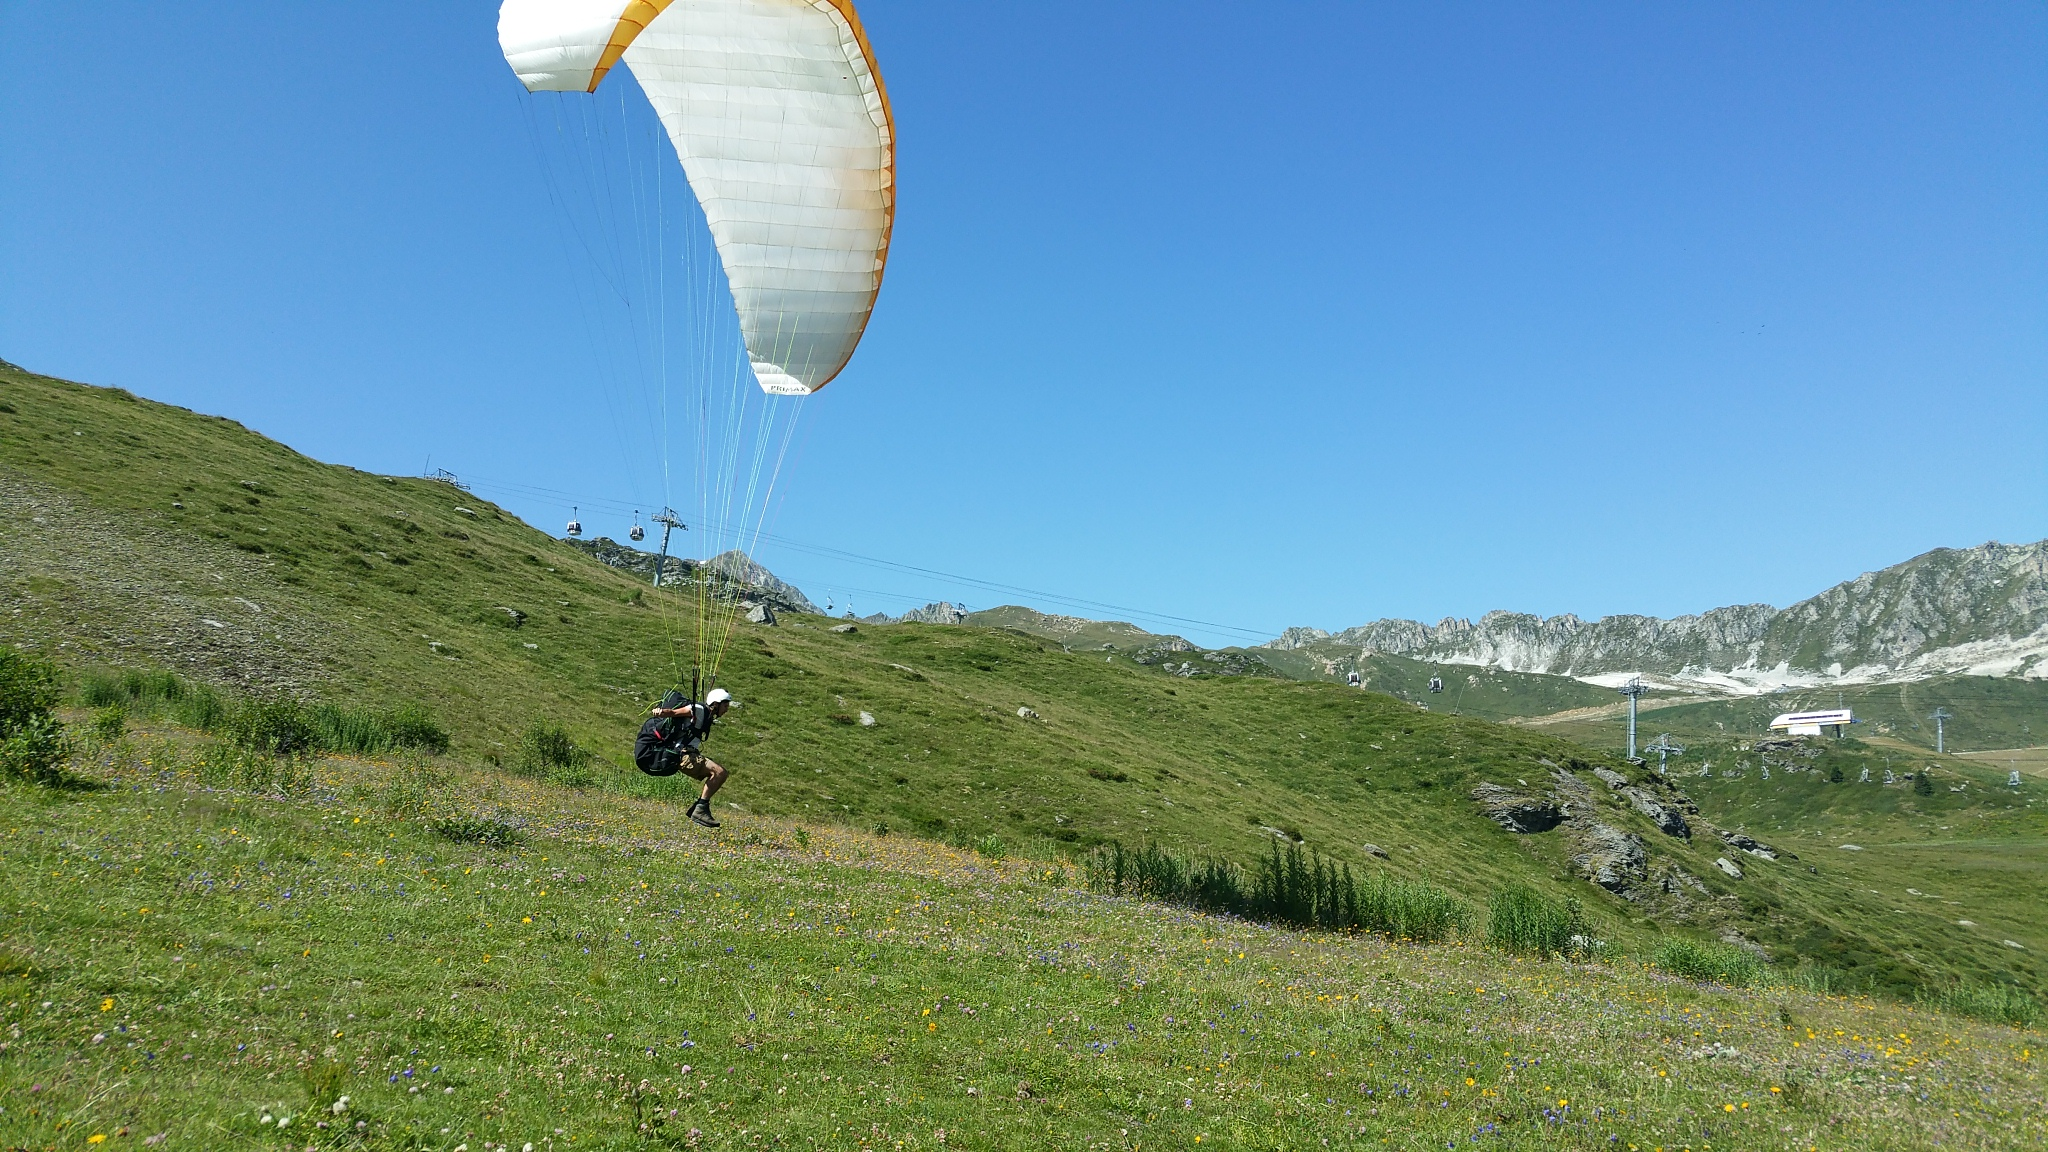 Unbelievable July month for paragliding. 4